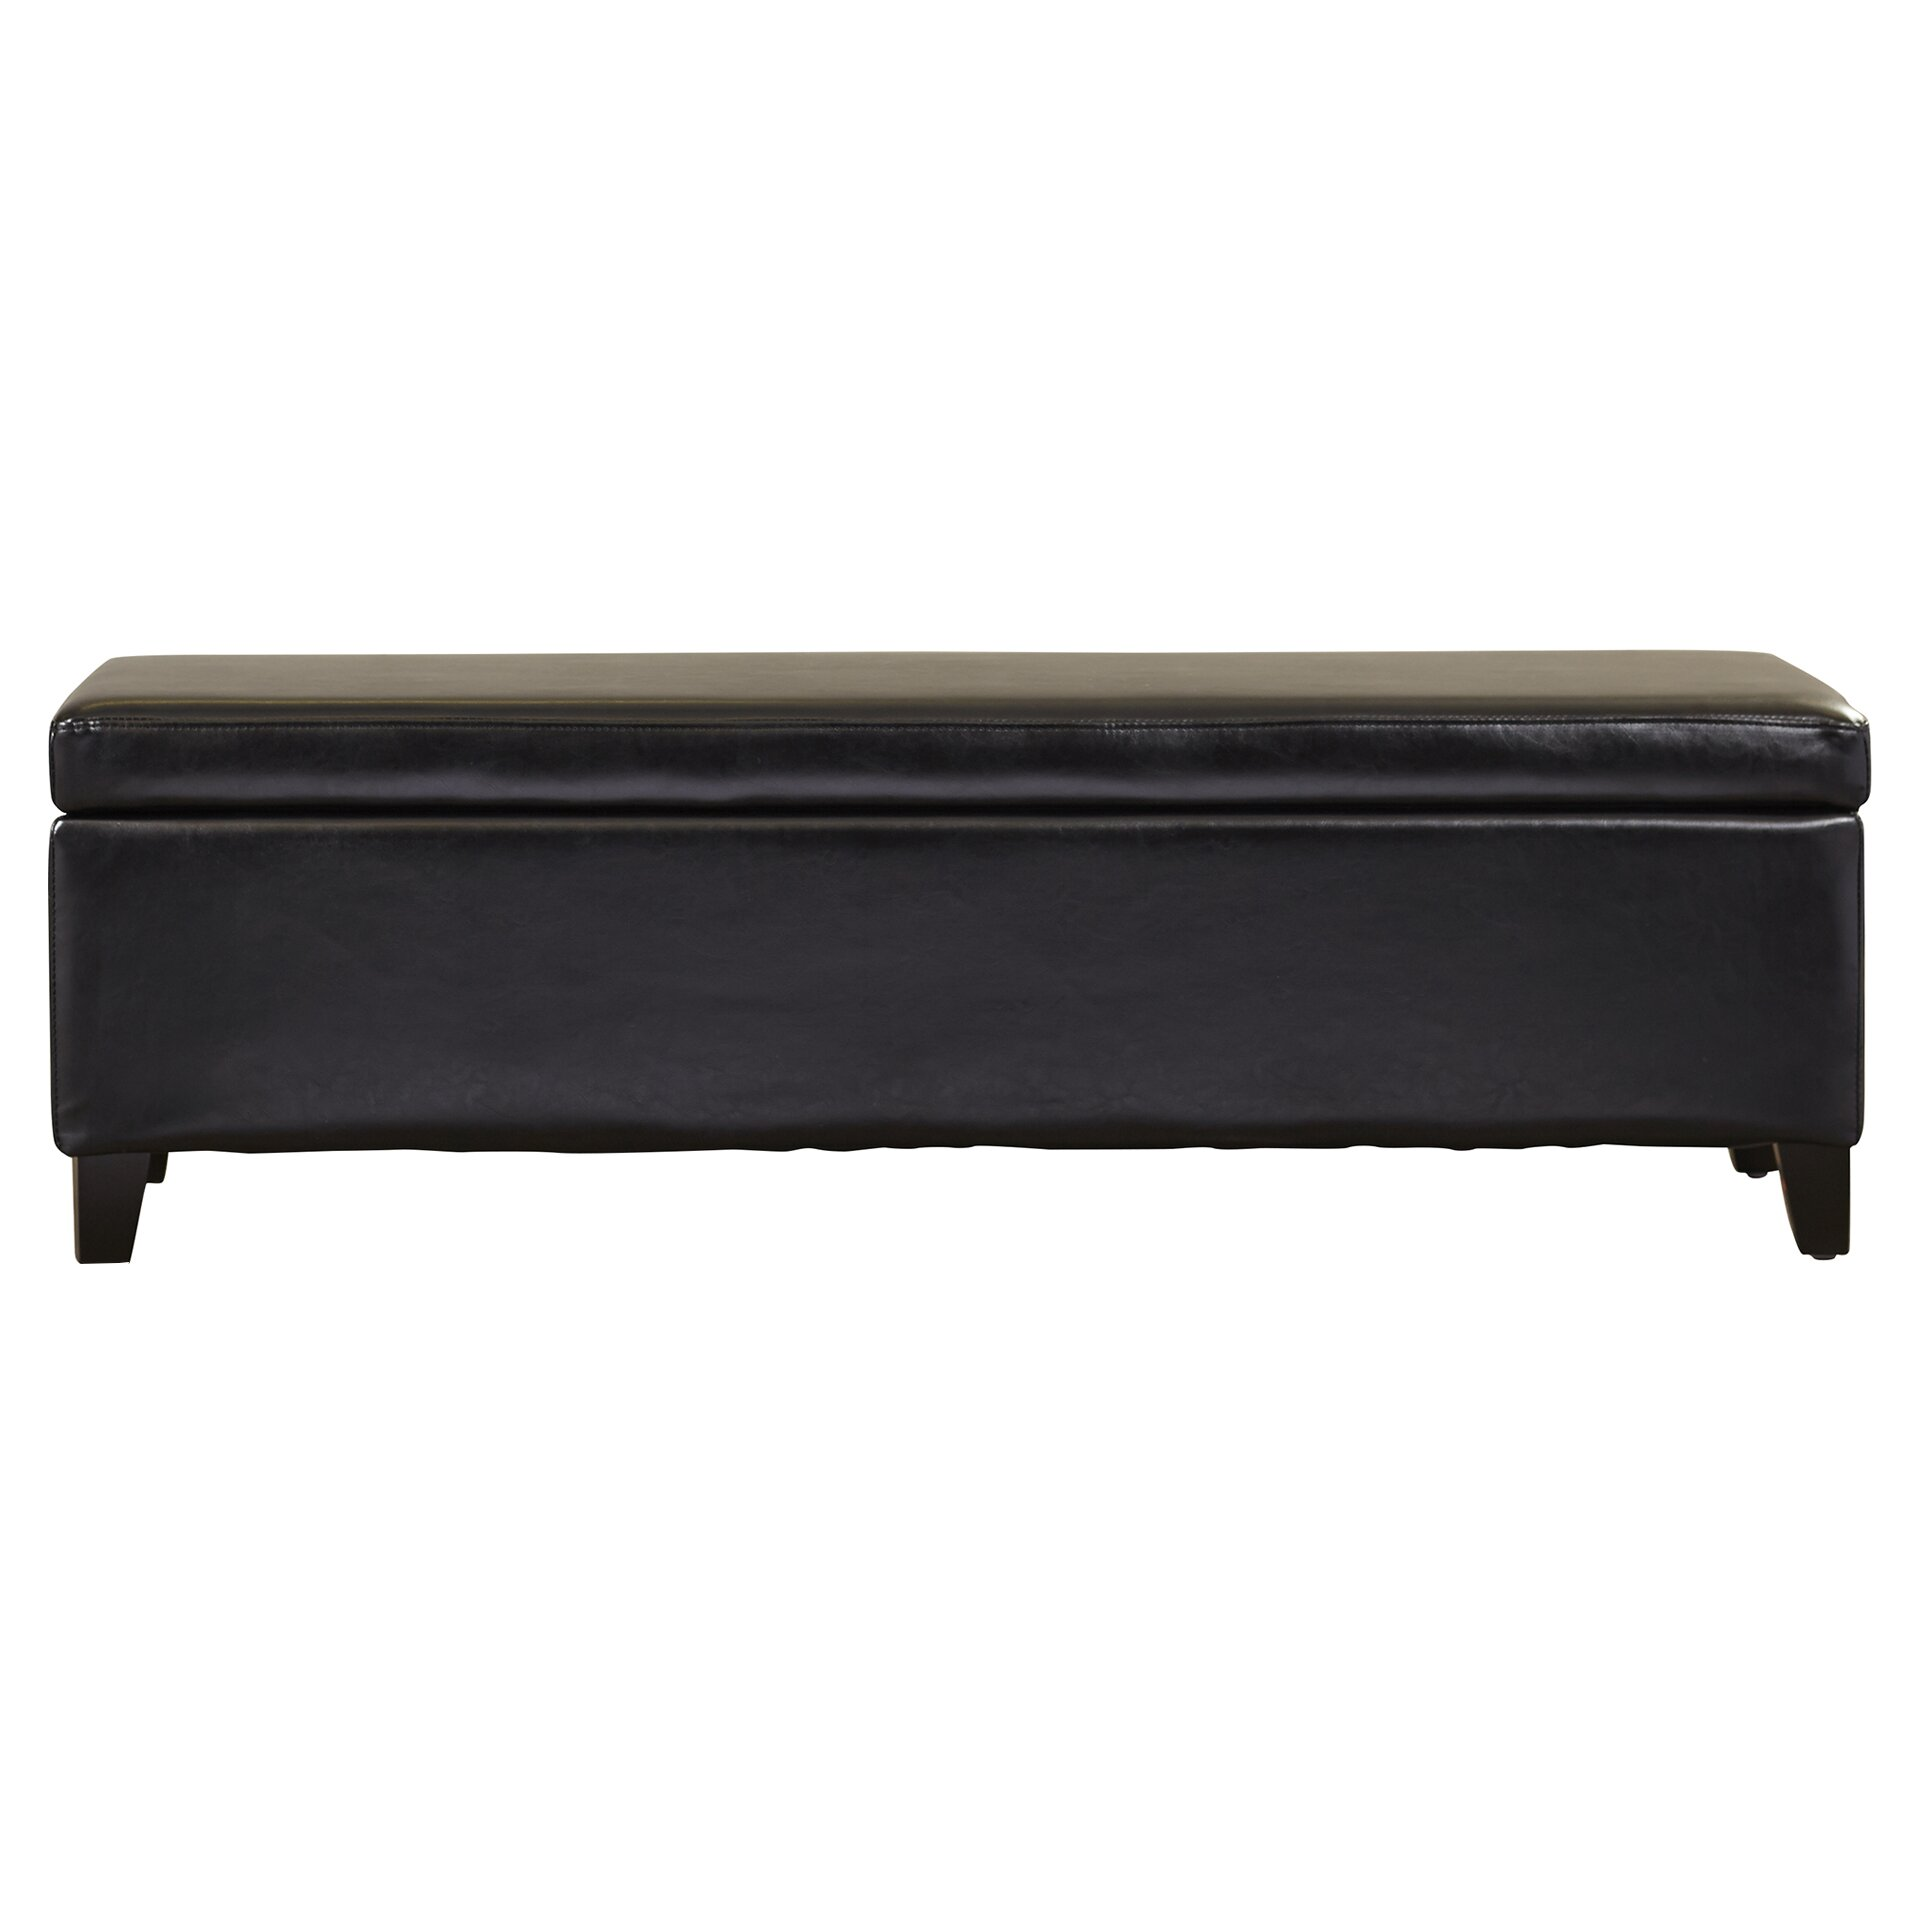 Ottoman Bench With Storage Modus Leather Storage Bench Chocolate Brown Ottoman Ebay End Of